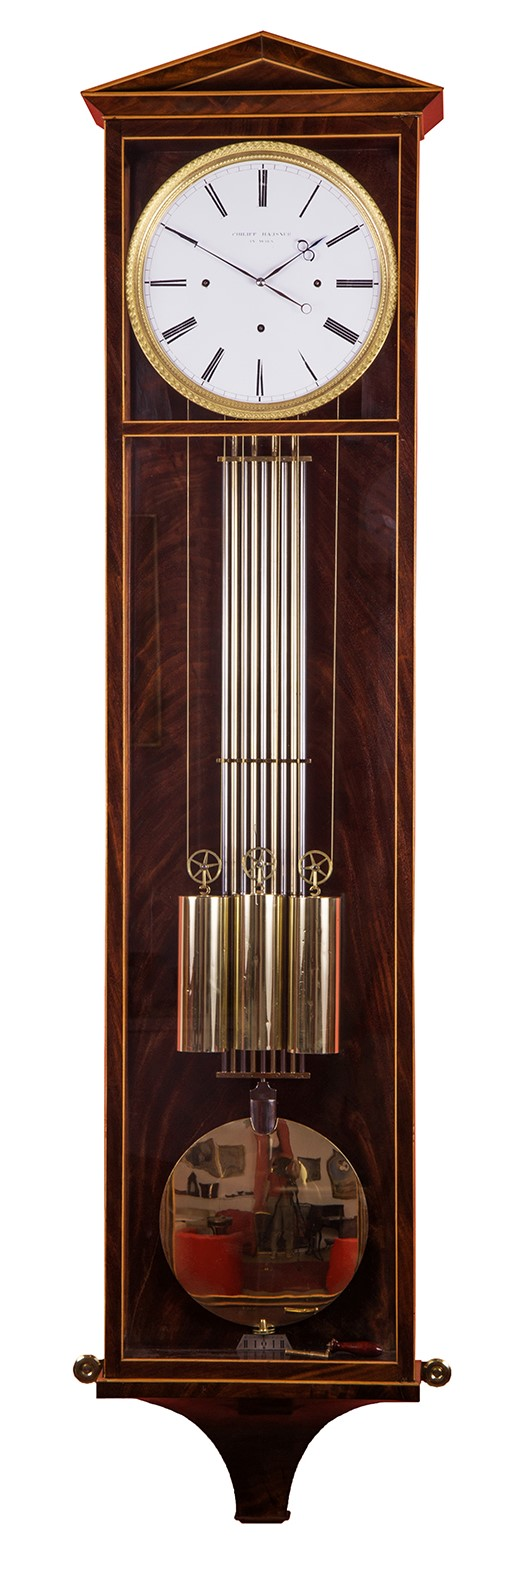 Dachl clock by Philipp Hausner with 1 month duration, c. 1830.